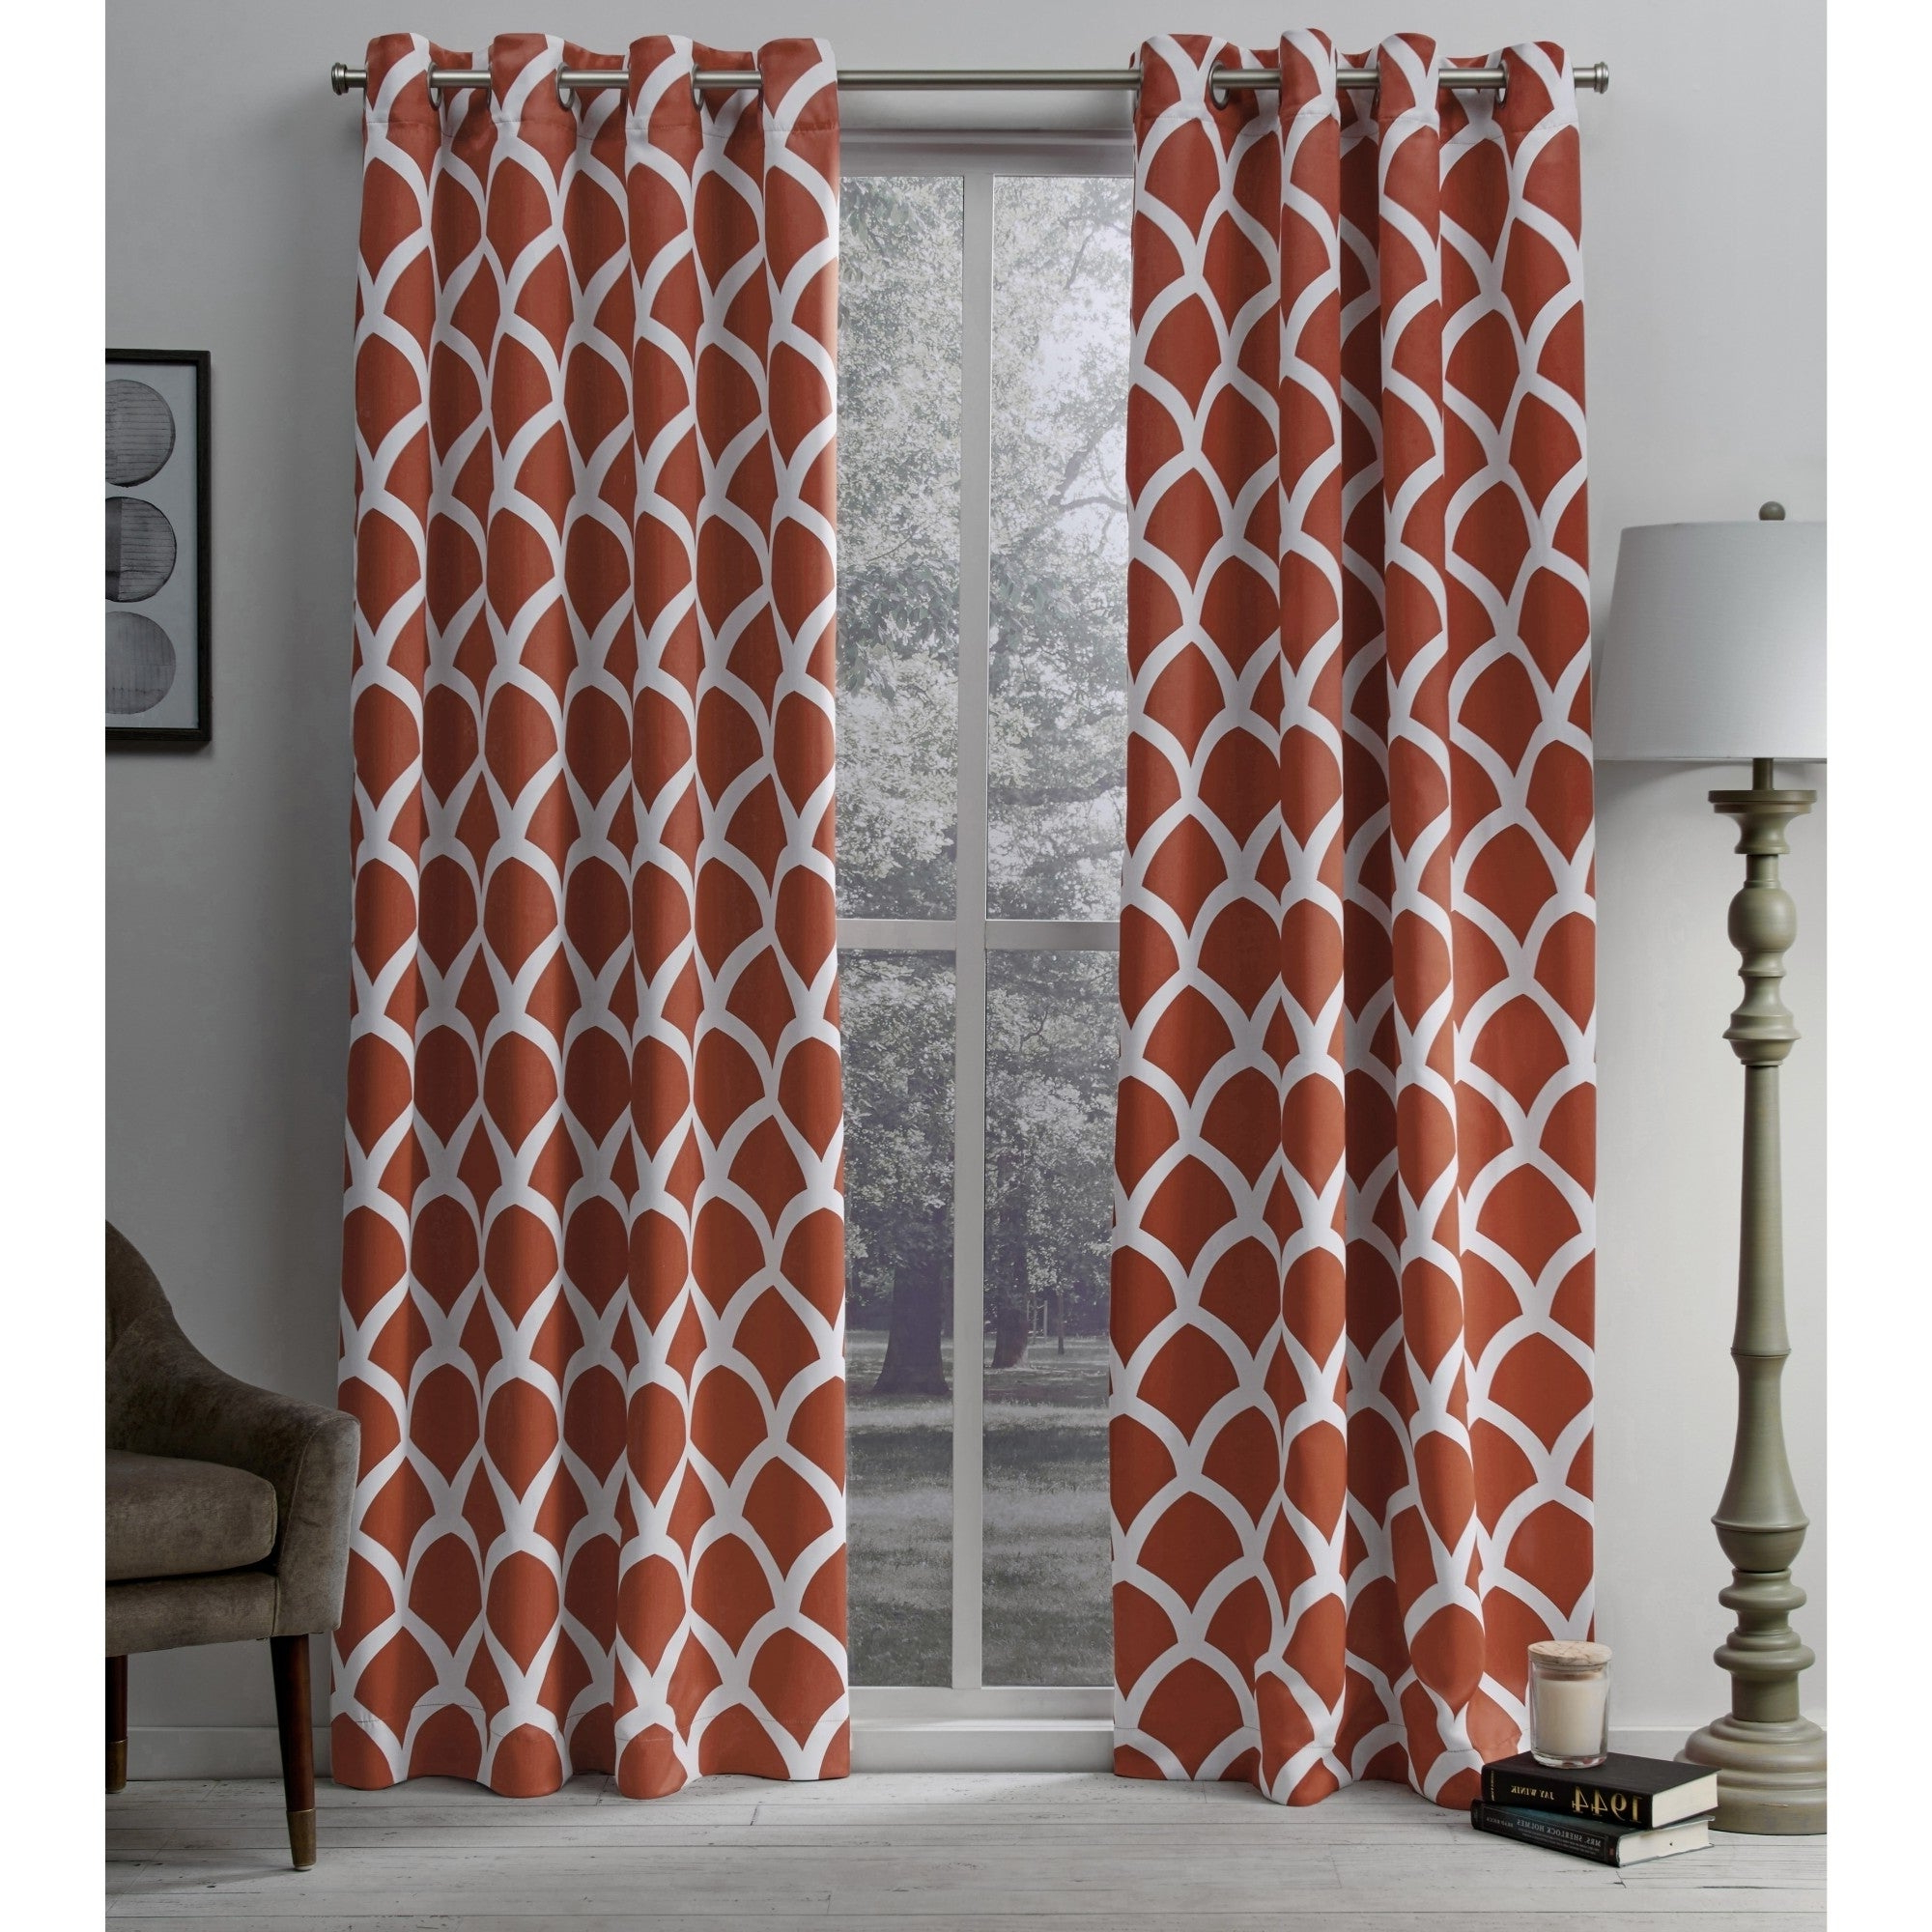 2020 Sateen Woven Blackout Curtain Panel Pairs With Pinch Pleat Top Intended For The Curated Nomad Ames Sateen Woven Blackout Grommet Top Curtain Panel Pair (View 1 of 20)